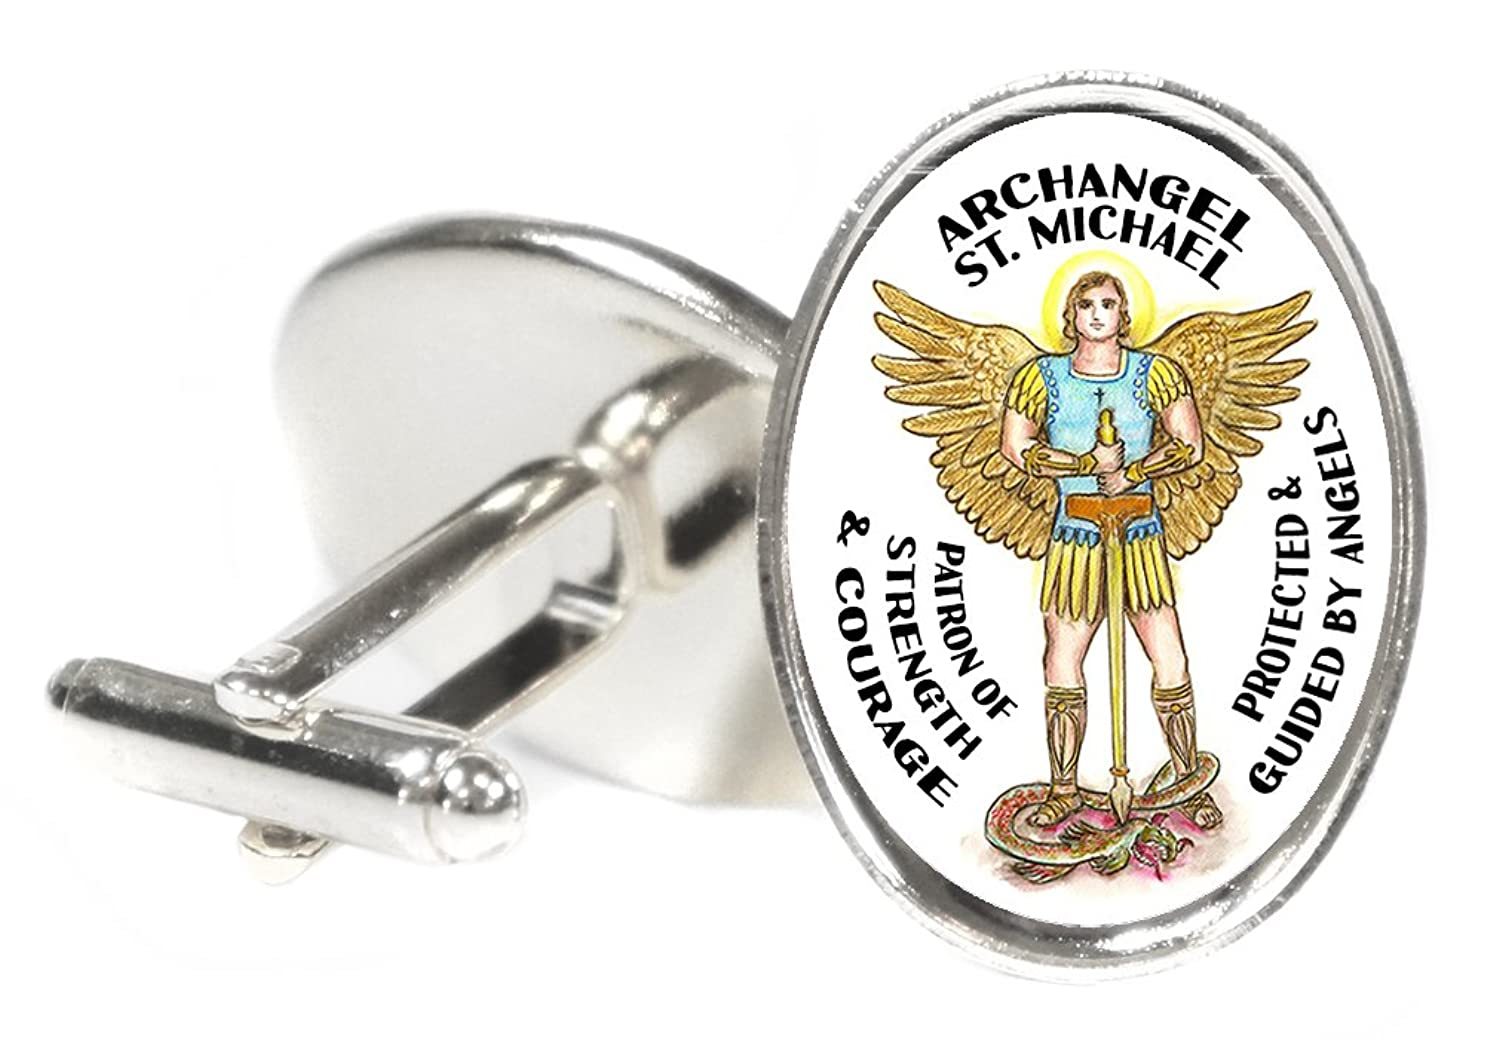 "Archangel Saint Michael Patron of Strength & Courage 18x24mm (3/4"" X 1"") Oval Silver Pair of Cuff Links"